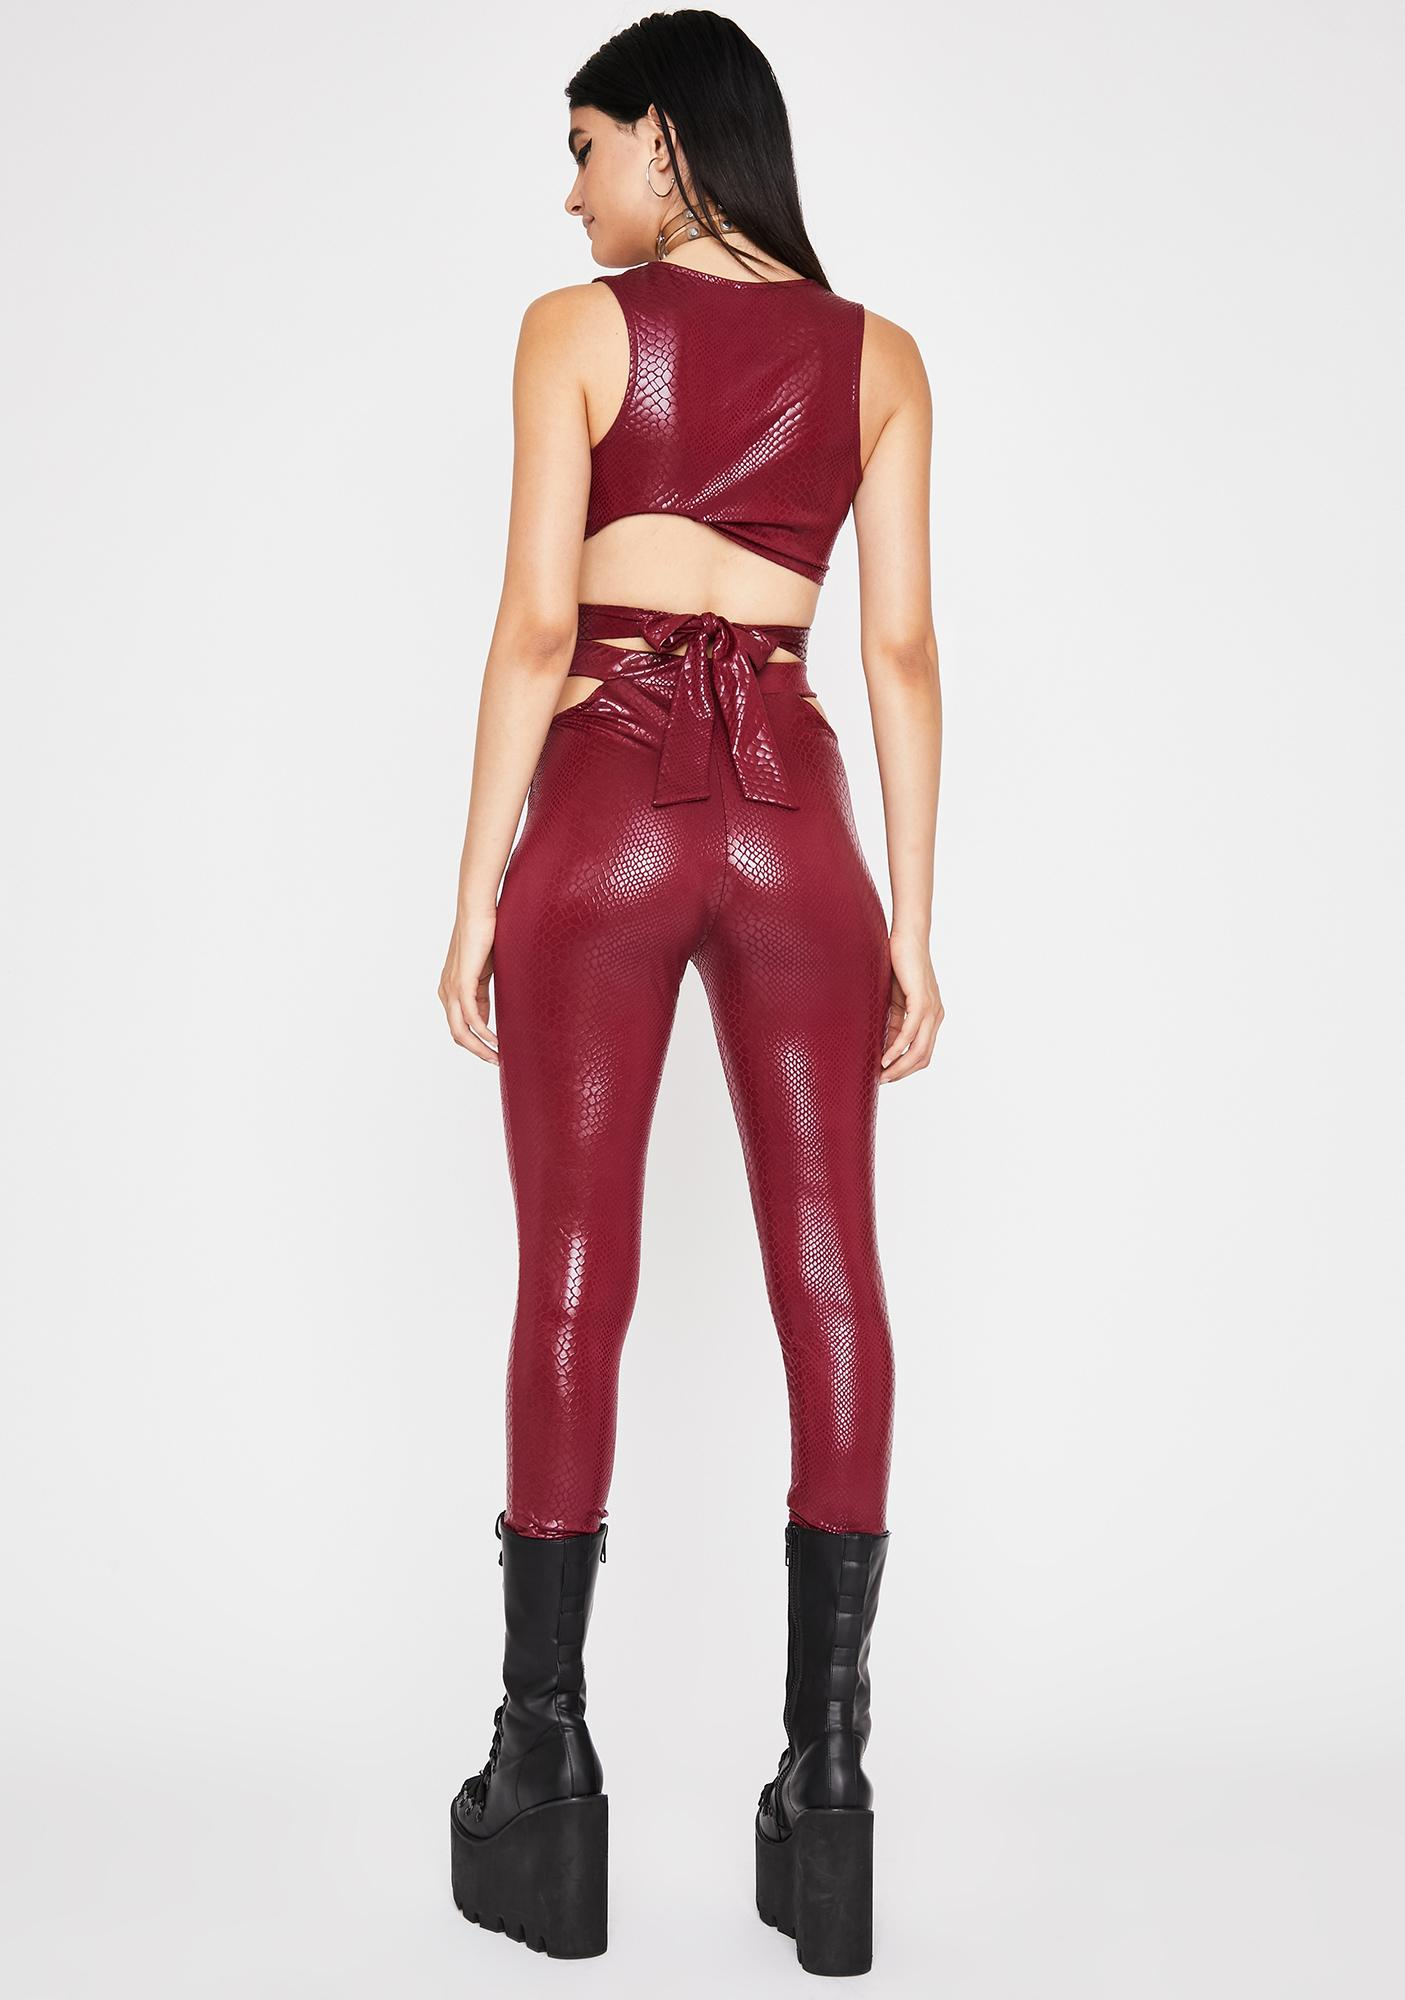 Fire Totally Hiss'terical Pant Set